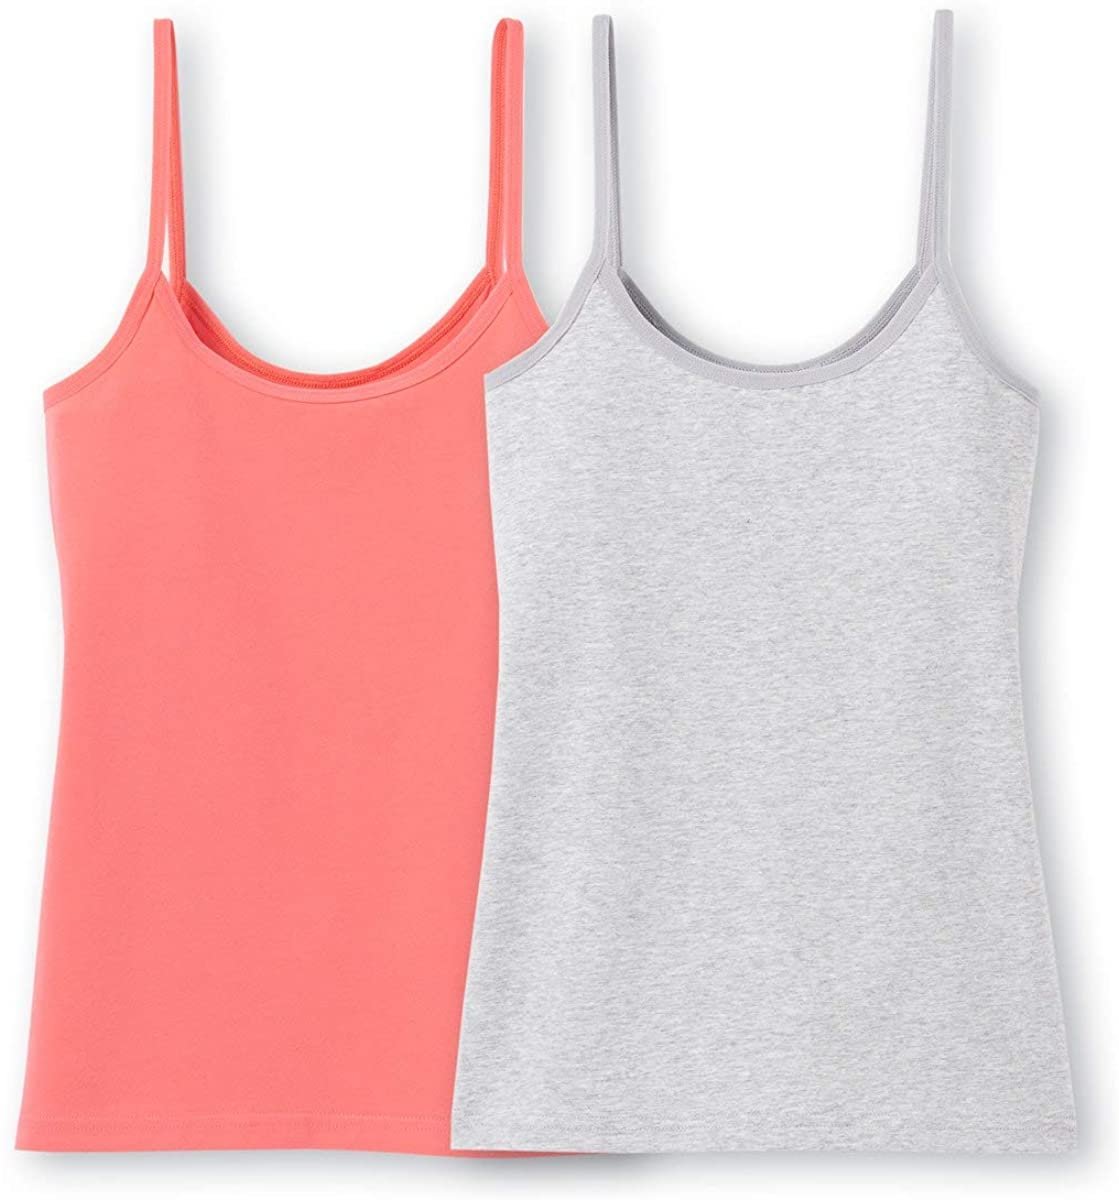 La Redoute Collection Pack of 2 Vest Tops with Shoestring Straps, 10-16 Years